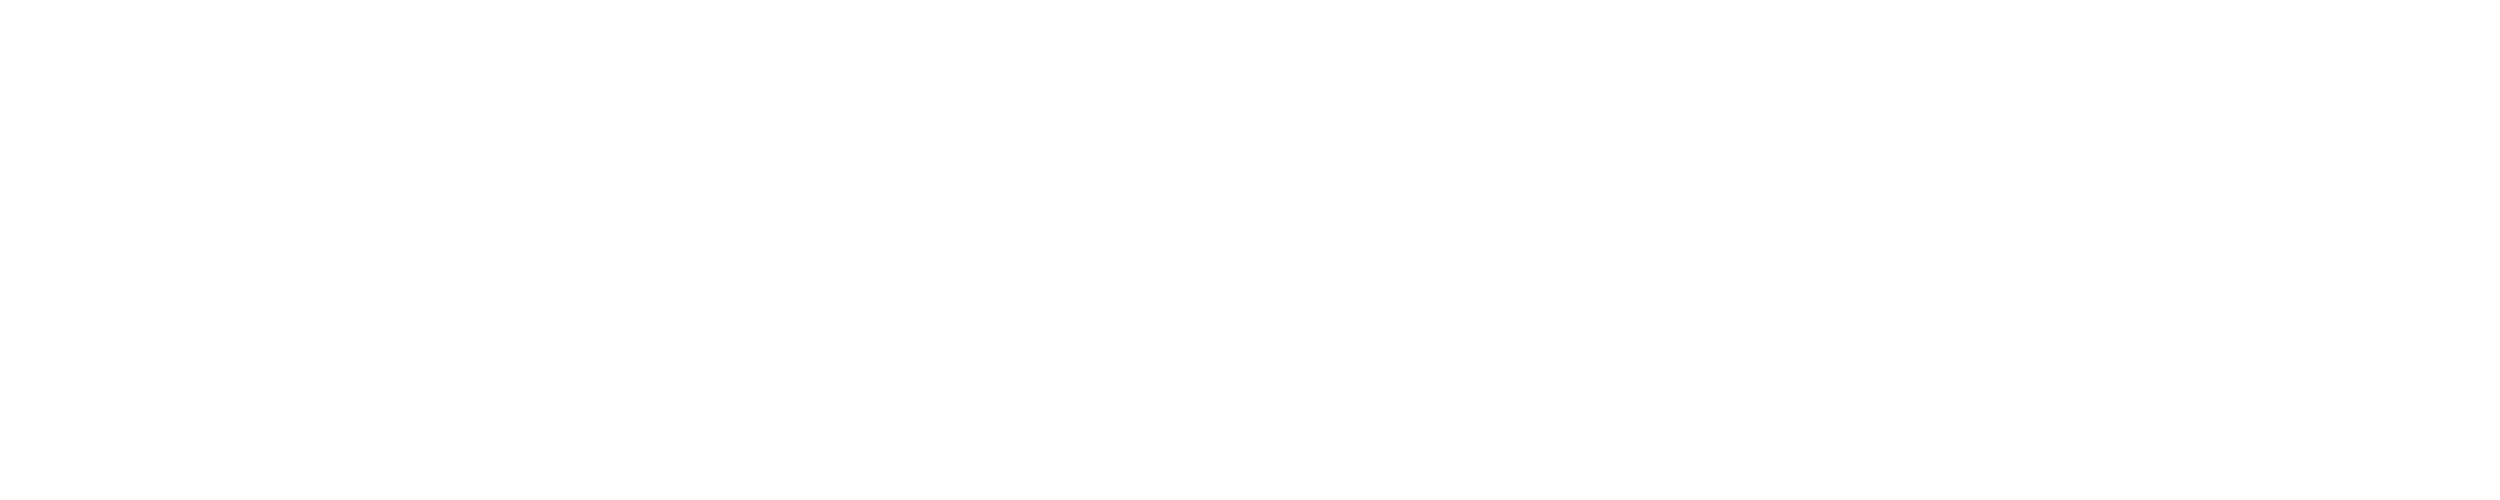 Nothing more powerful than a story